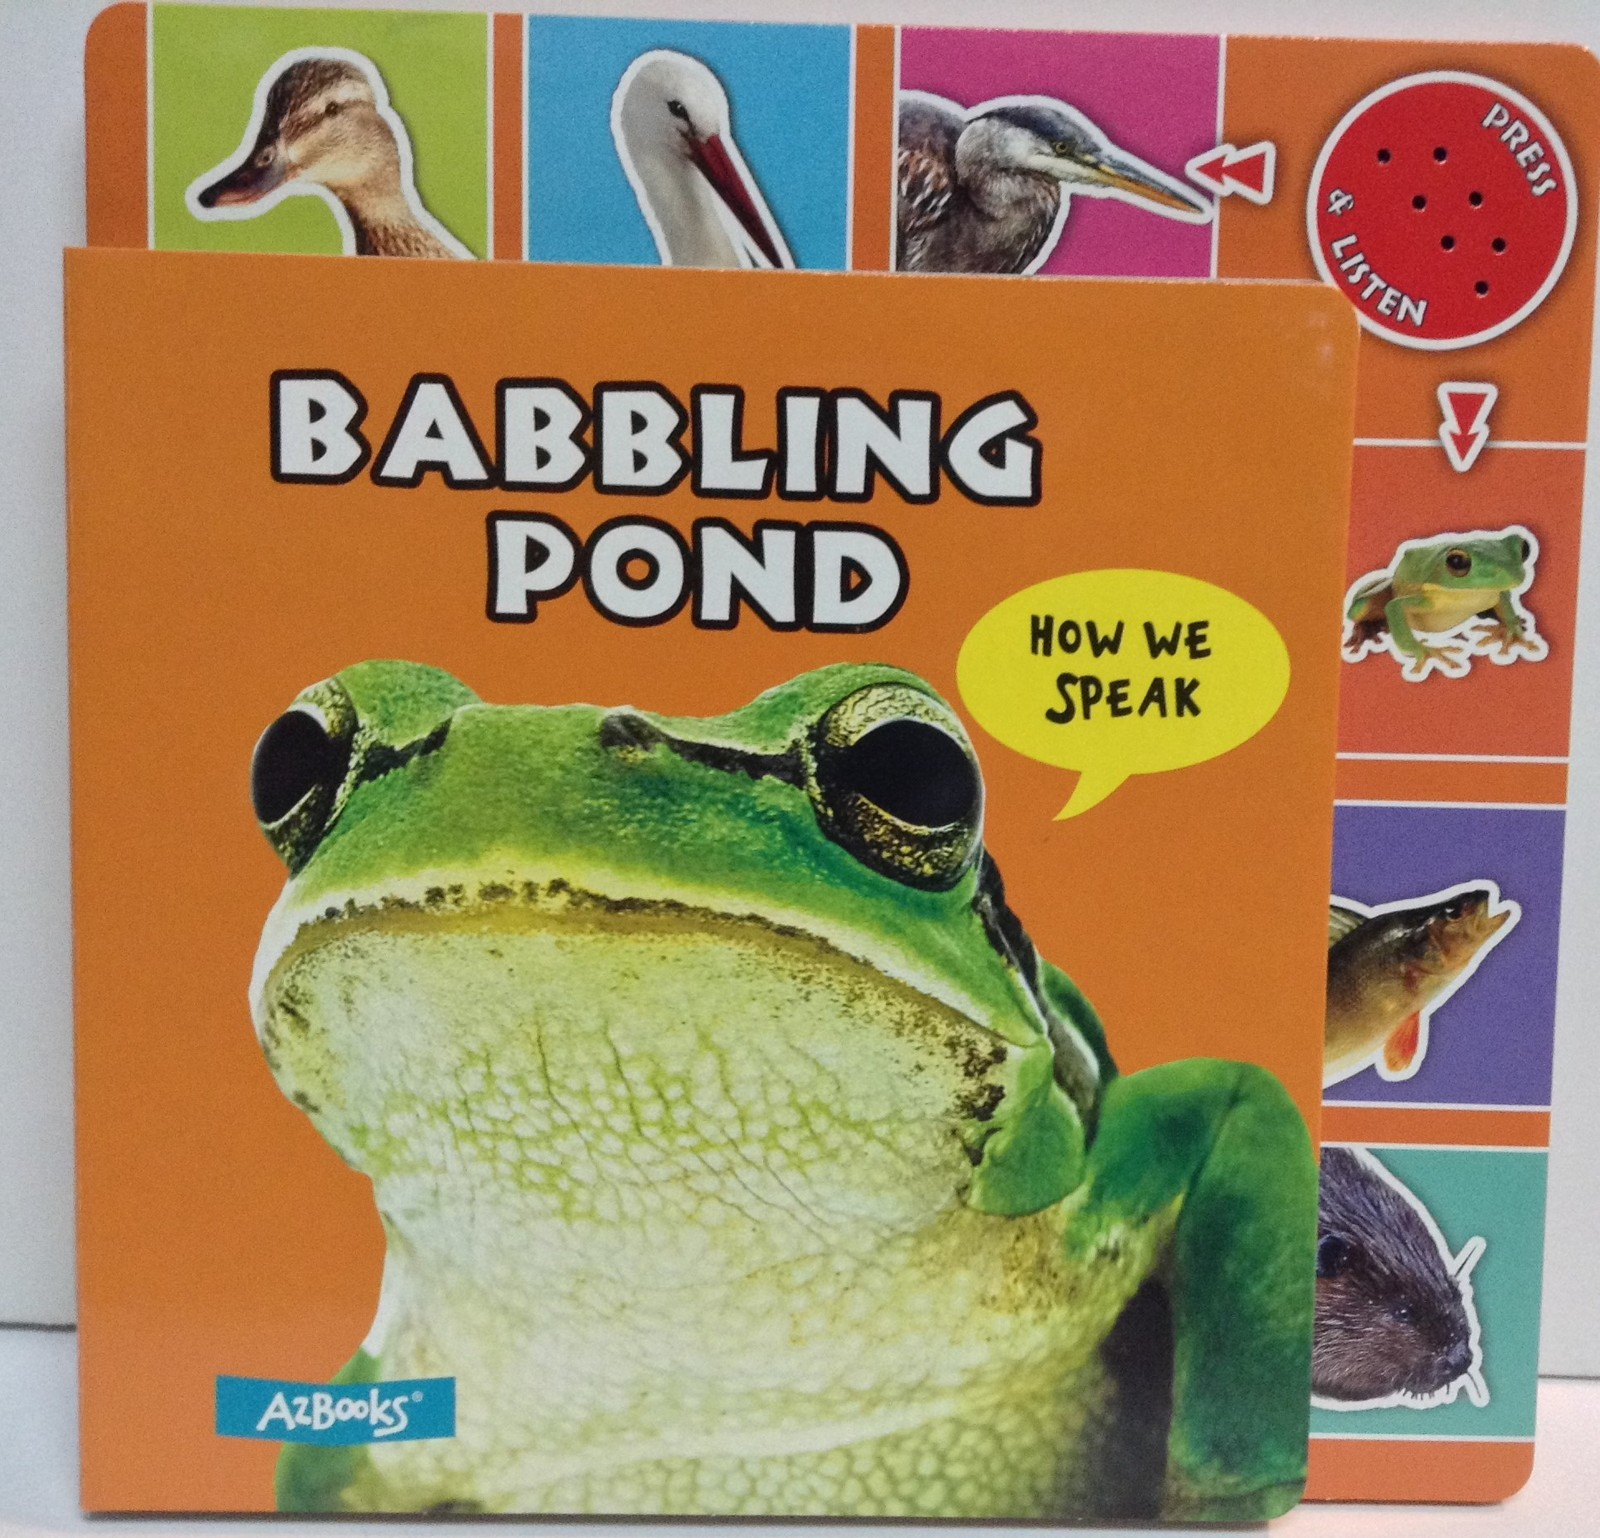 Babbling Pond Children's Board Book How We Speak NEW ISBN 9781618890979